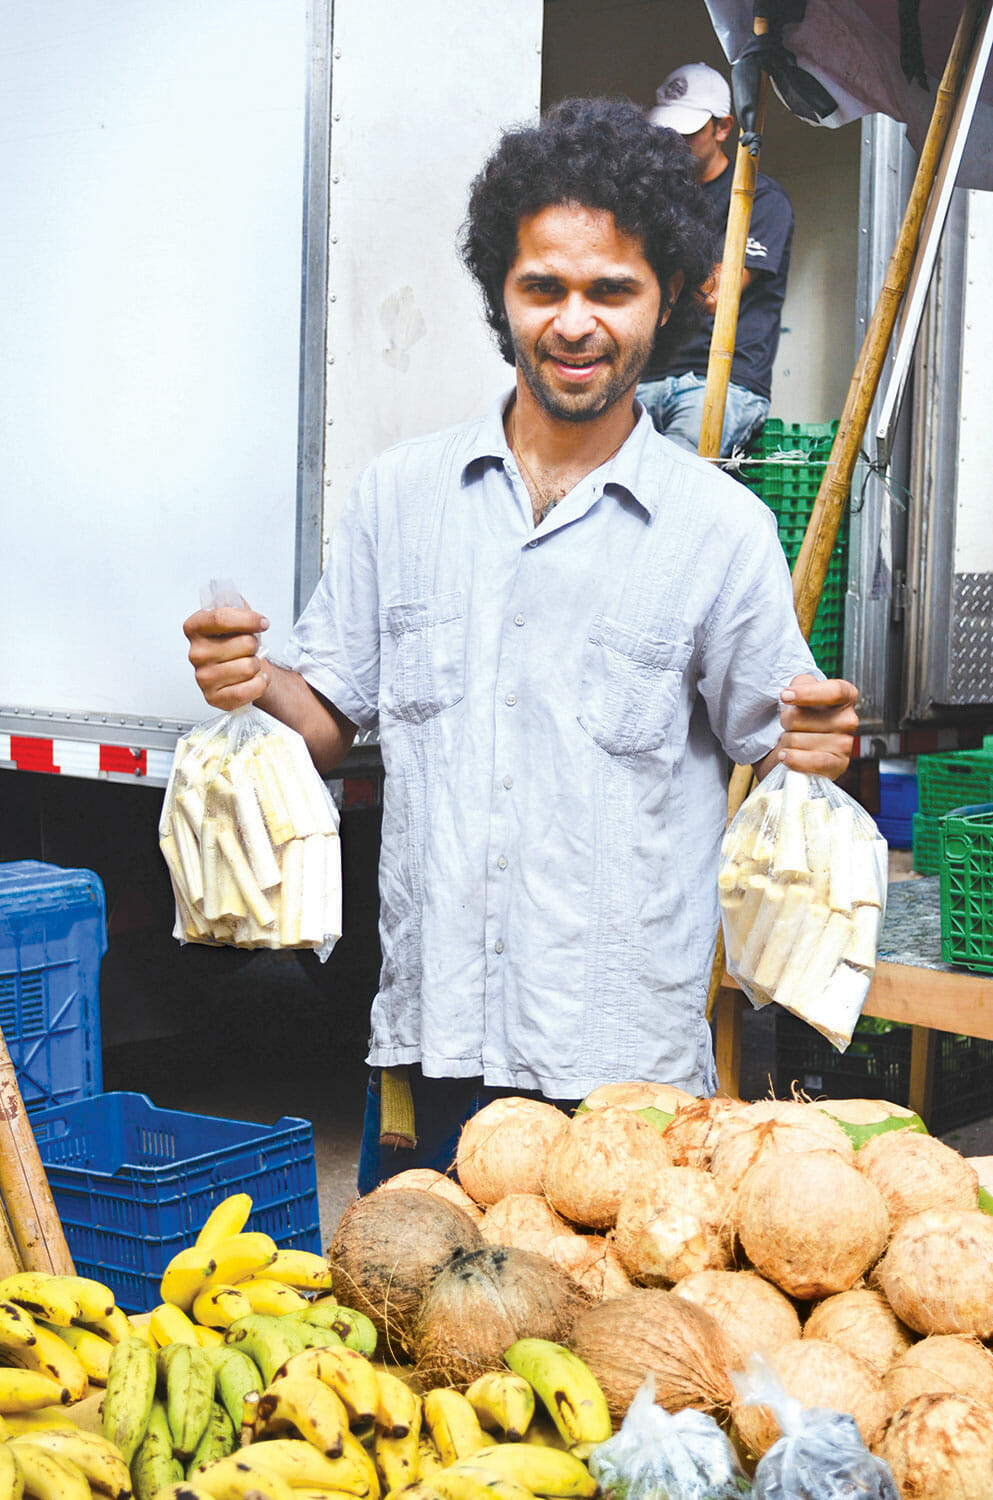 Murillo sells fresh hearts of palm at the Feria Verde market in San Jose, Costa Rica.